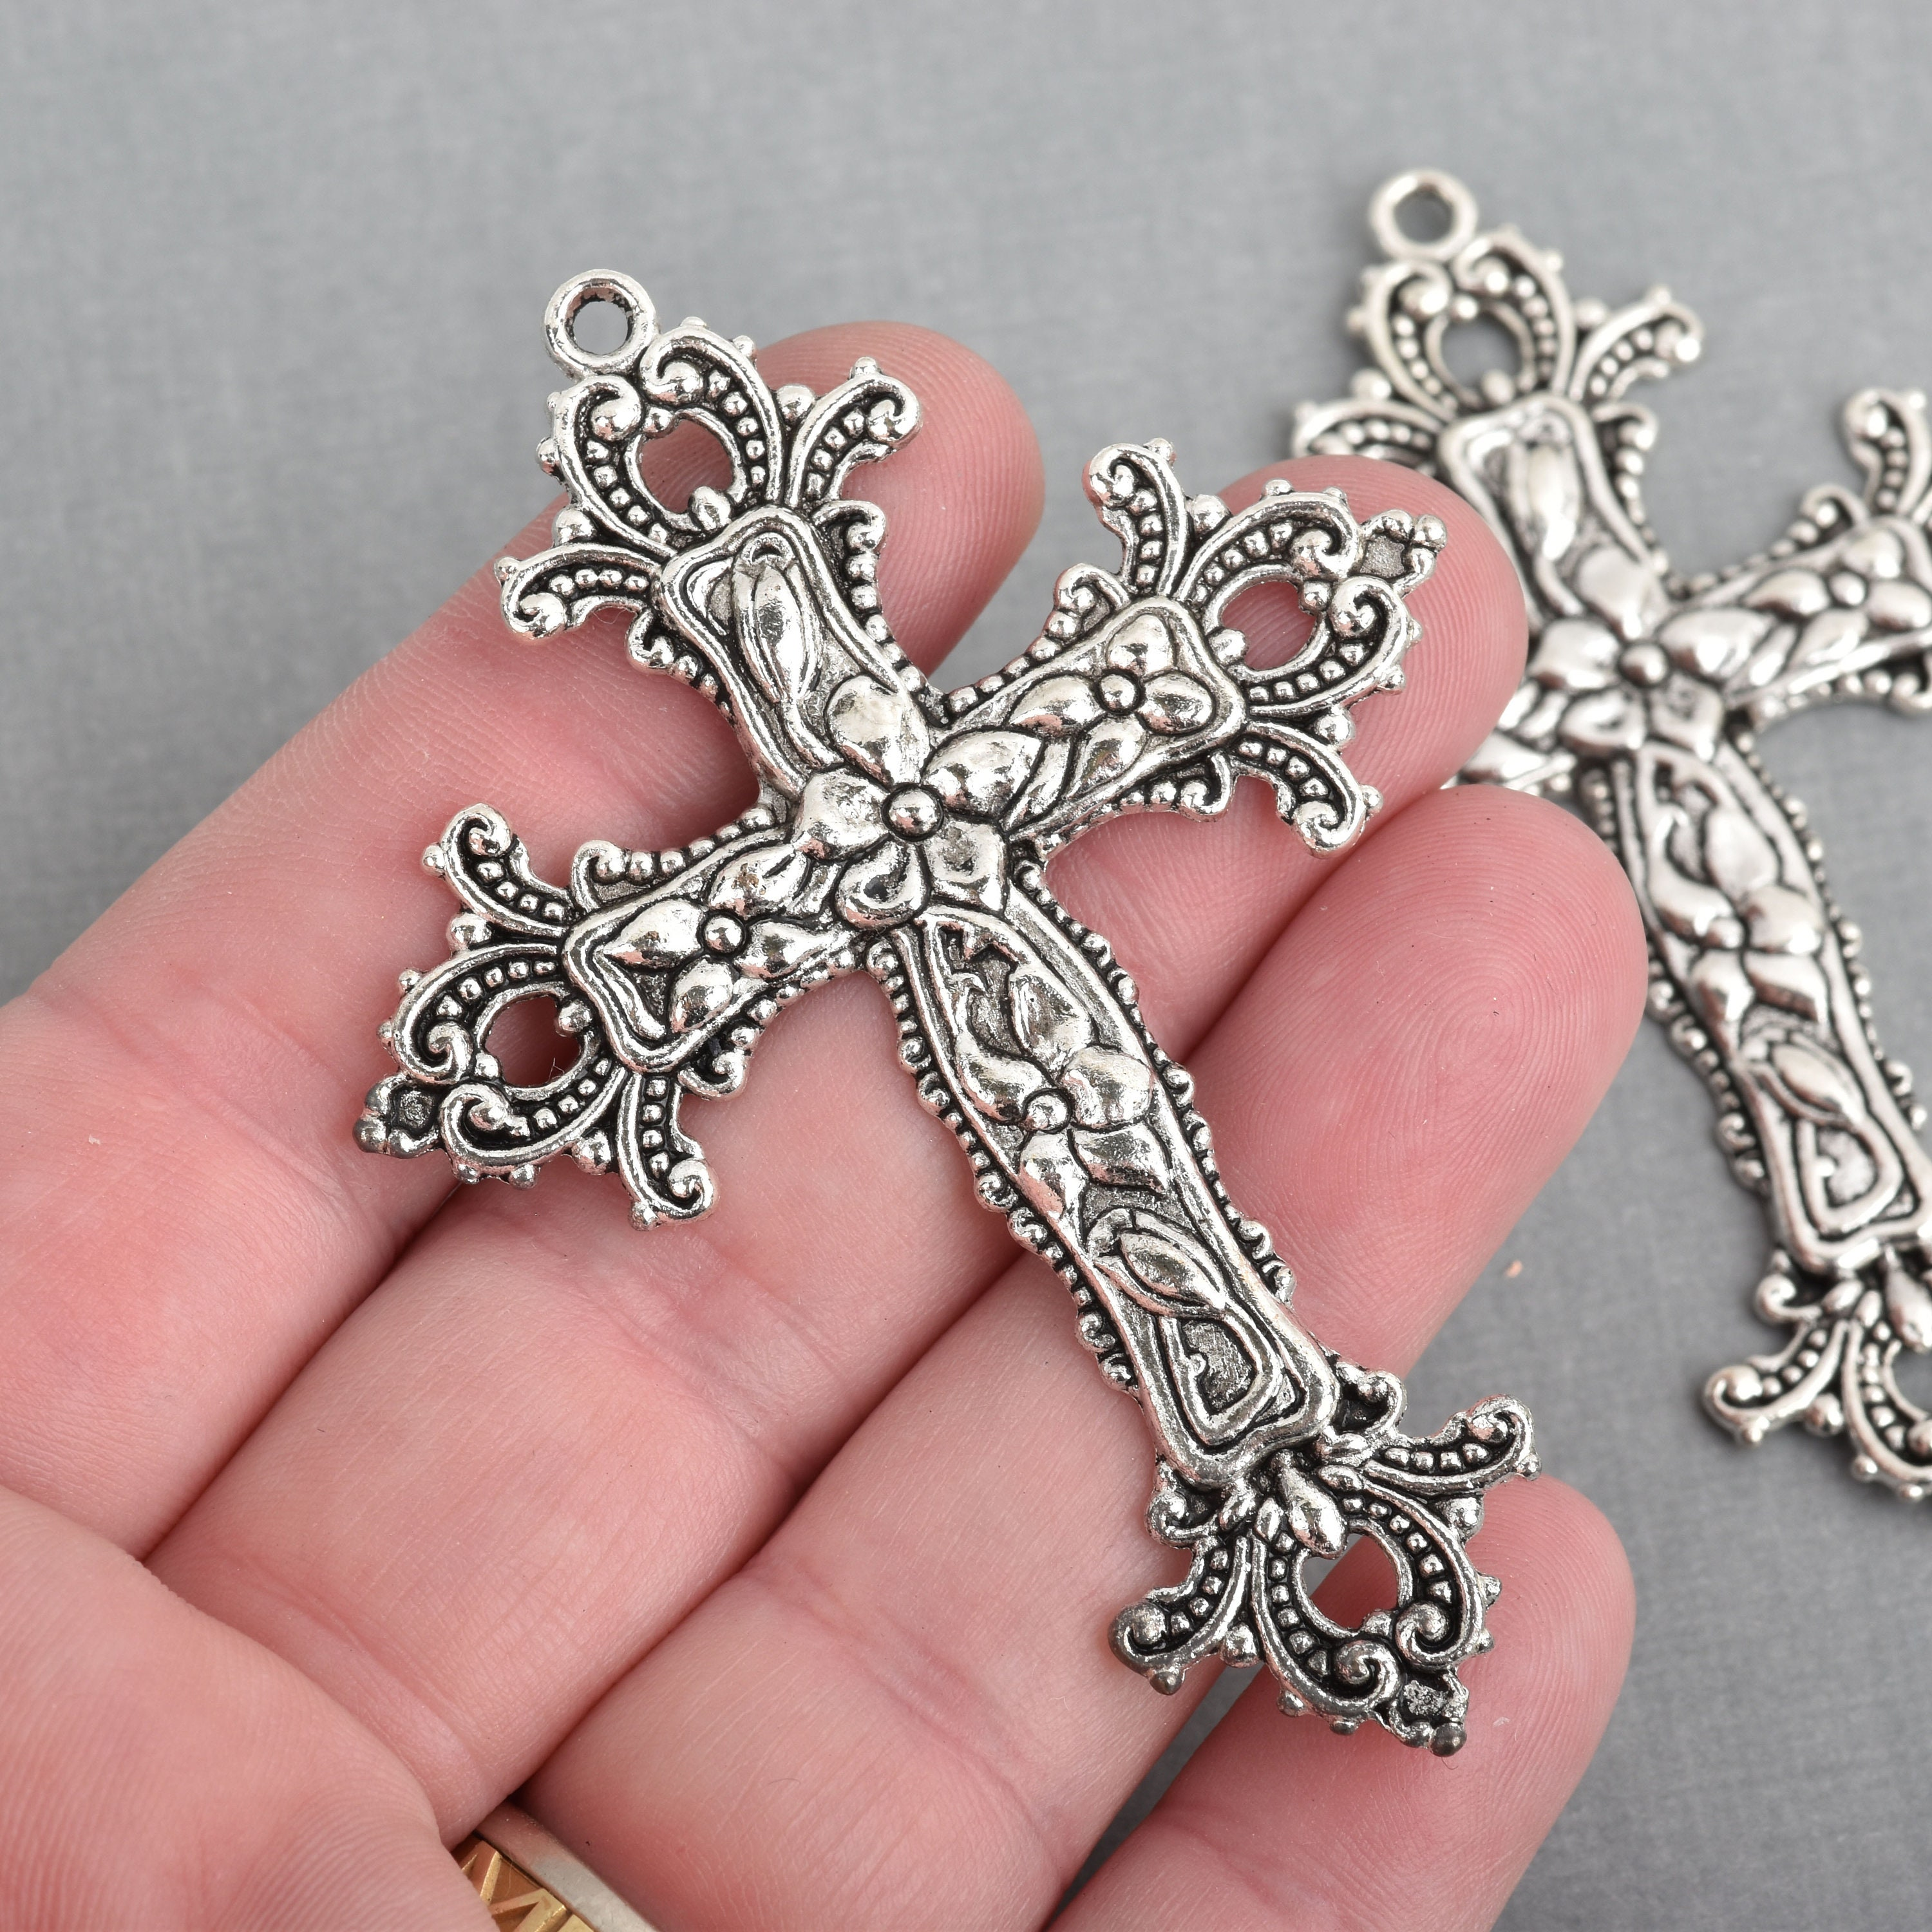 2 large silver cross pendants ornate floral and flourish detail 2 large silver cross pendants ornate floral and flourish detail 75x55mm chs4211 aloadofball Image collections